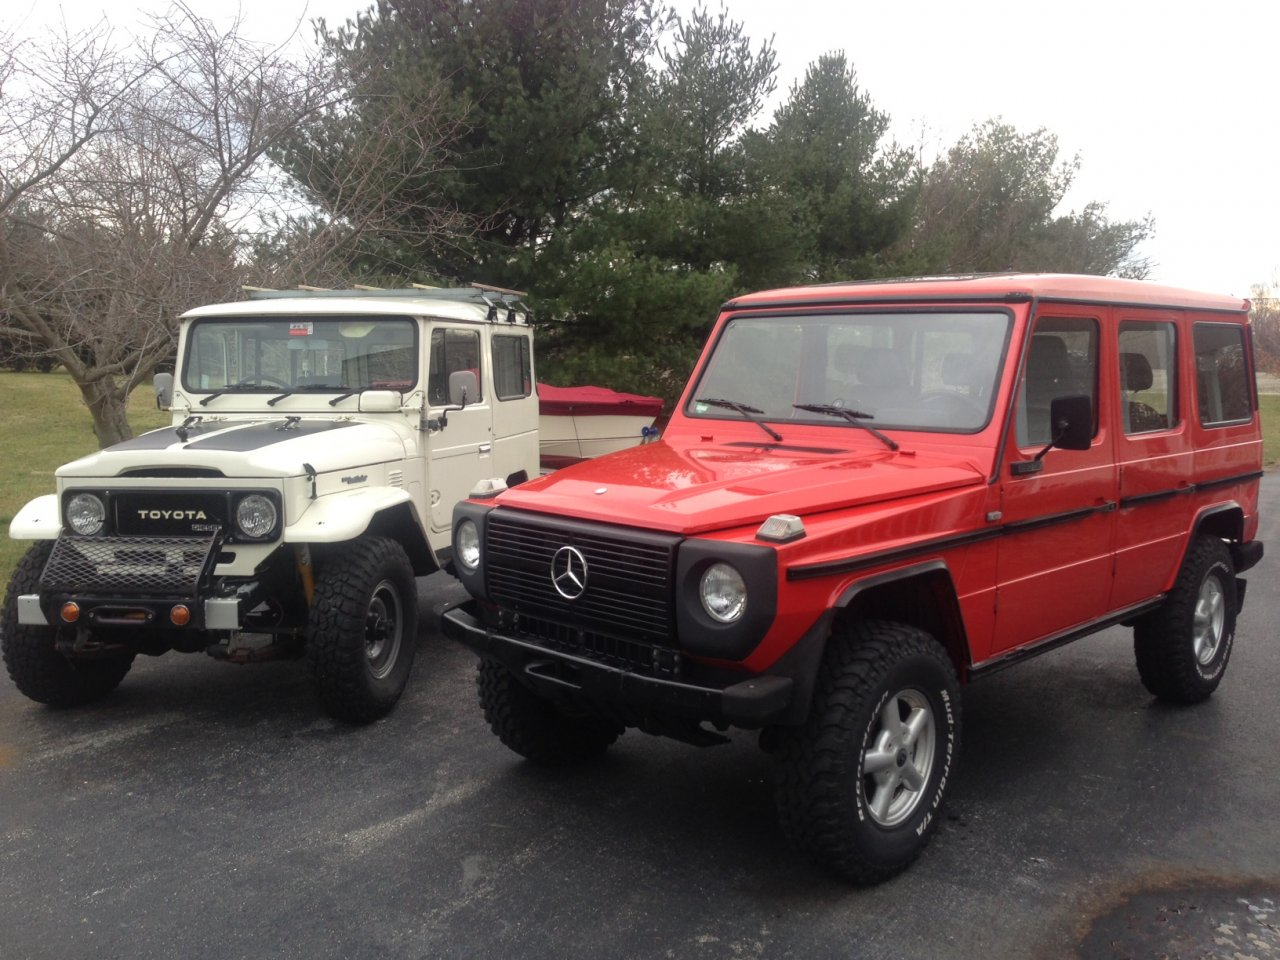 Tire Sale Canada >> For Sale - 1985 Mercedes 280GE 4 door G Wagon, Baltimore, MD | IH8MUD Forum